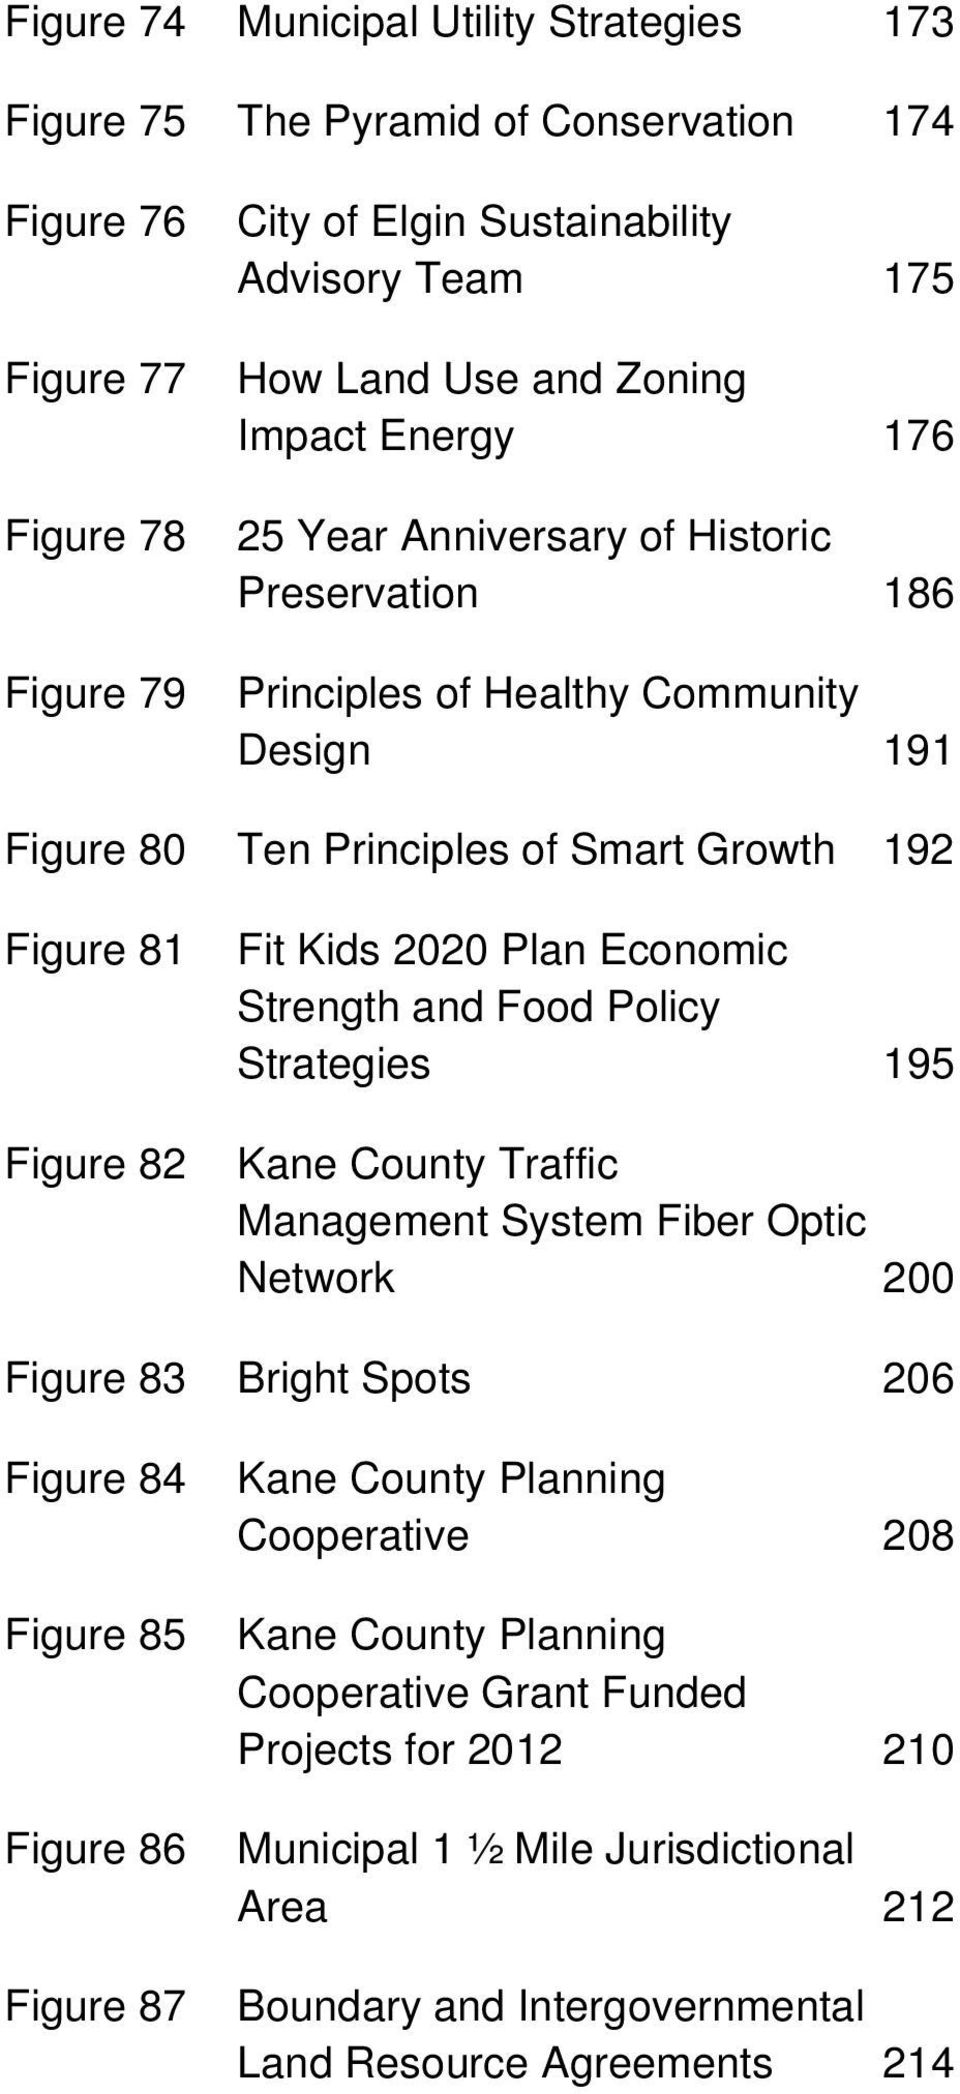 2020 Plan Economic Strength and Food Policy Strategies 195 Kane County Traffic Management System Fiber Optic Network 200 Figure 83 Bright Spots 206 Figure 84 Figure 85 Figure 86 Figure 87 Kane